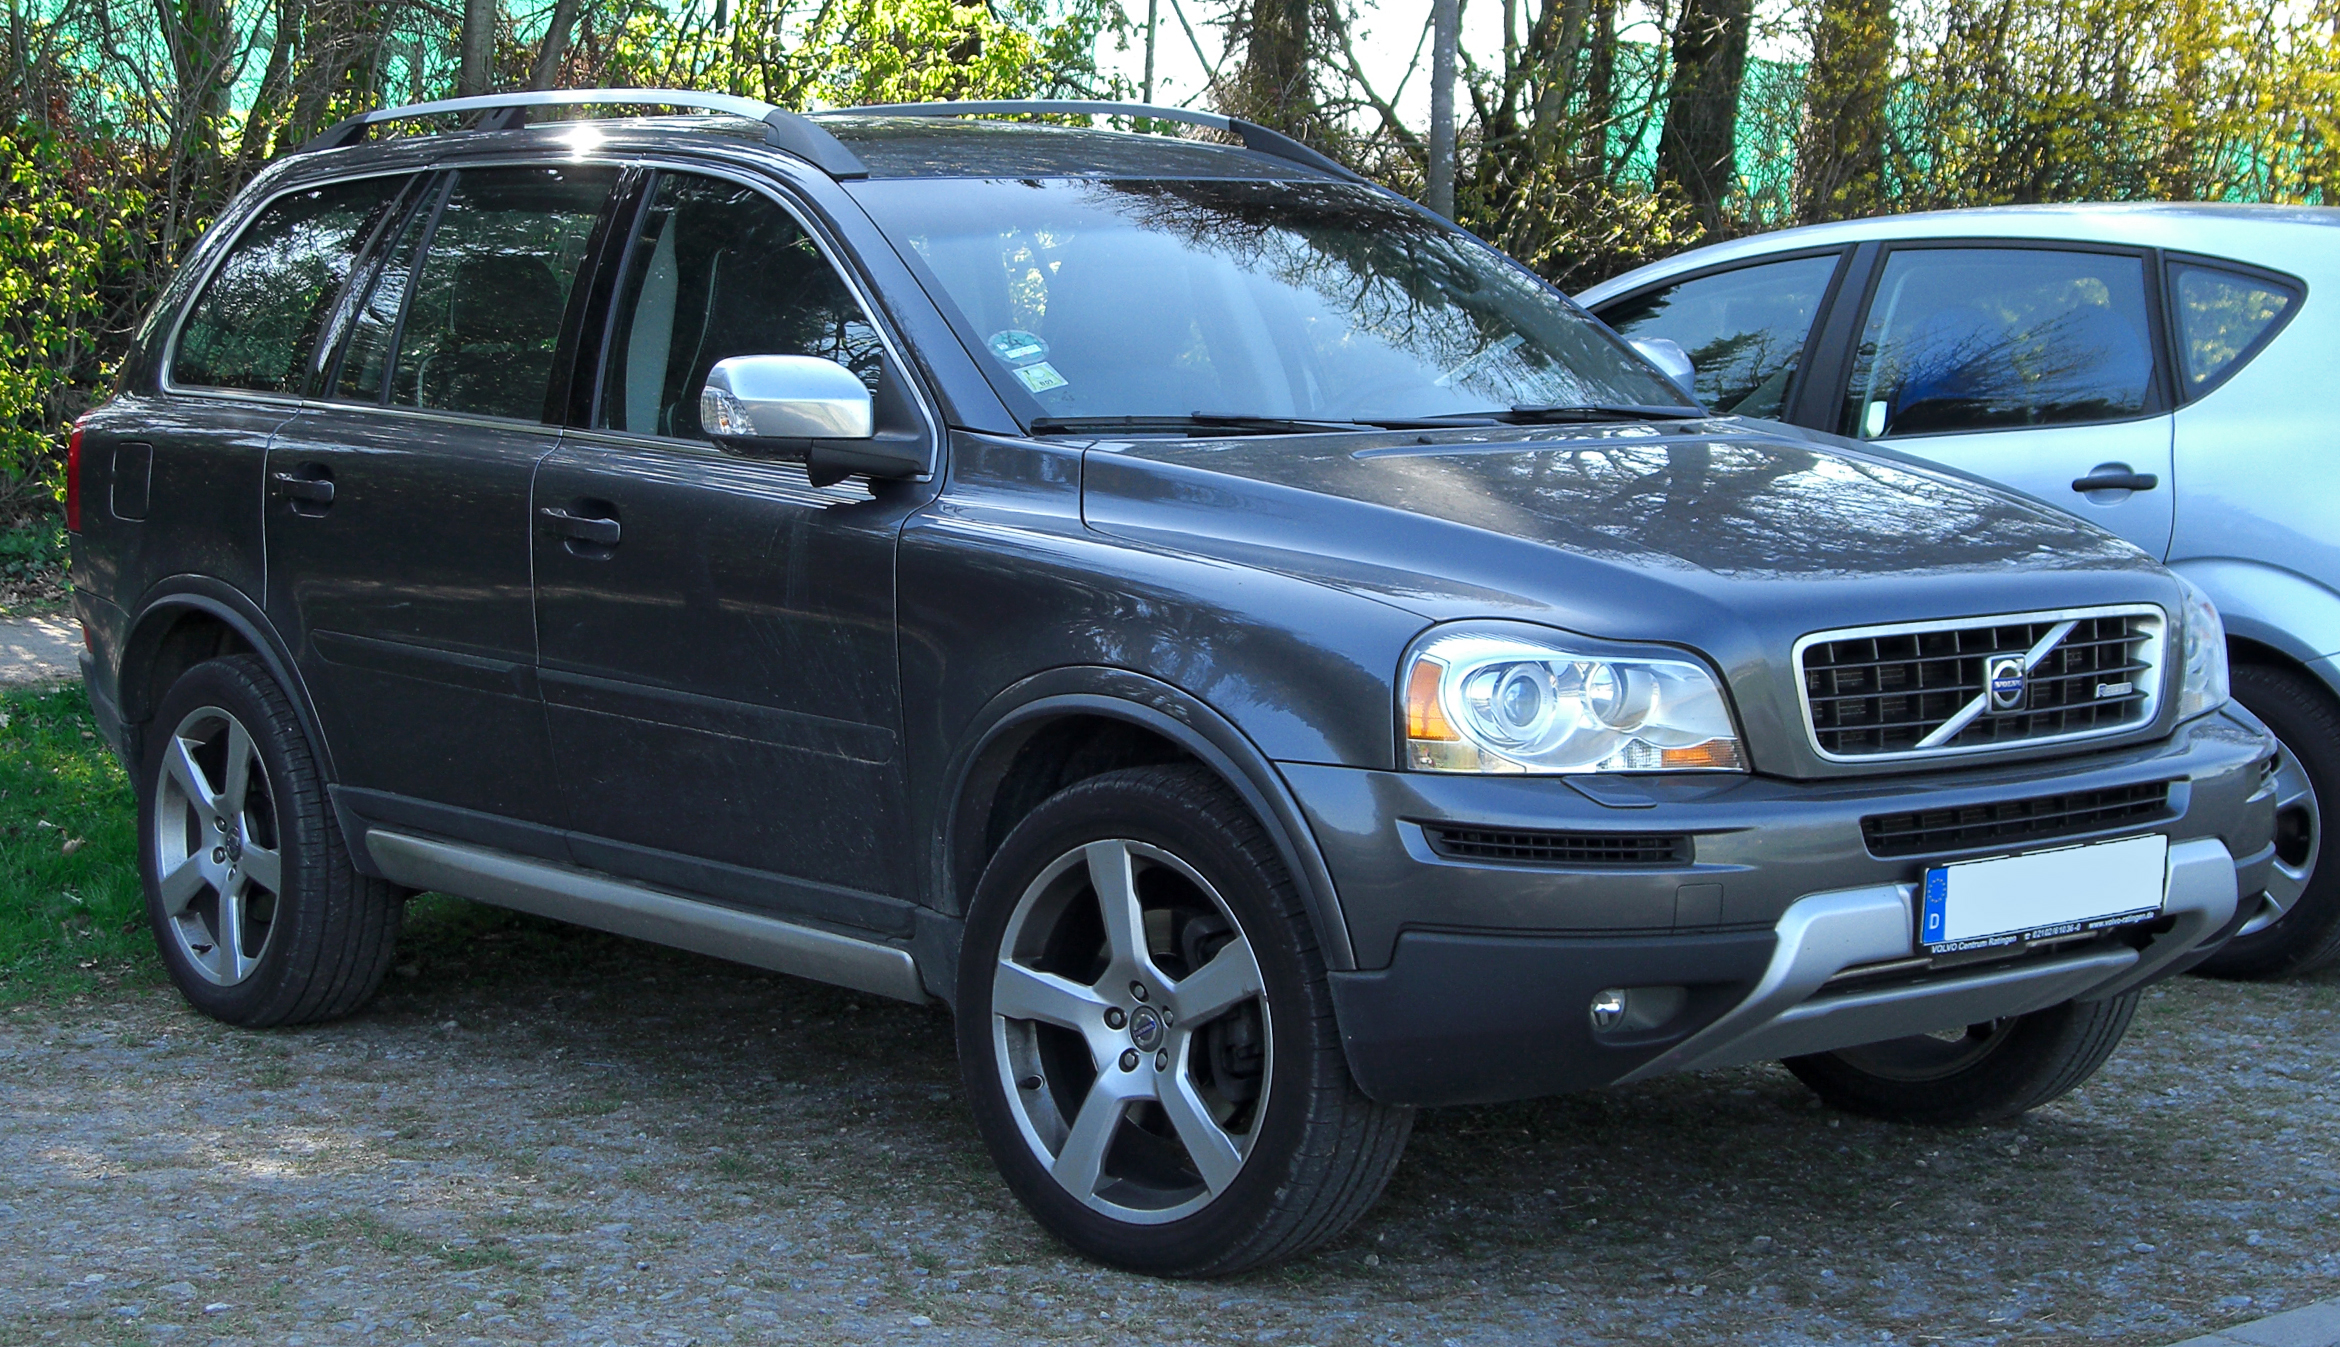 Volvo Xc90 Commercial >> File:Volvo XC90 Facelift Edition R-Design rear 20100417.jpg - Wikimedia Commons